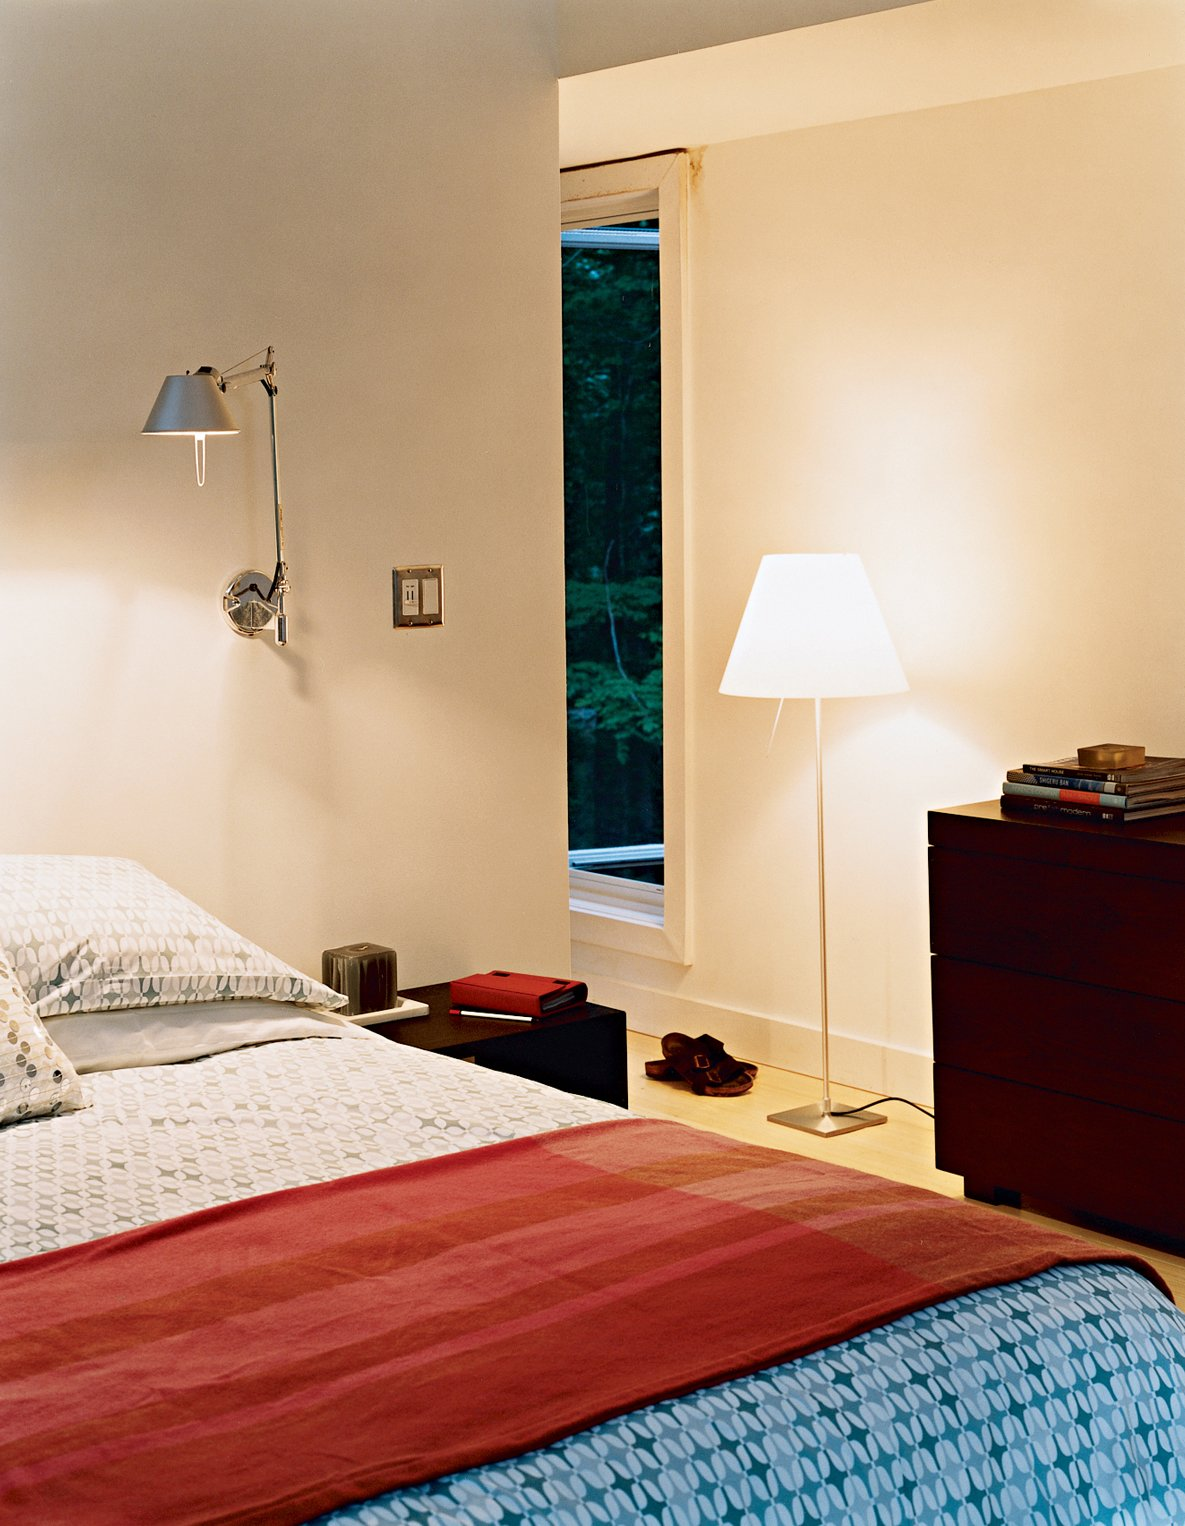 The master bedroom has a number of windows in varying shapes and sizes, providing unique views to the woods outside. The bed, chest of drawers, side tables, and geometric linens are all from West Elm. The Tolomeo wall lamps are by Artemide.  Photo 6 of 12 in Prefab, Proven